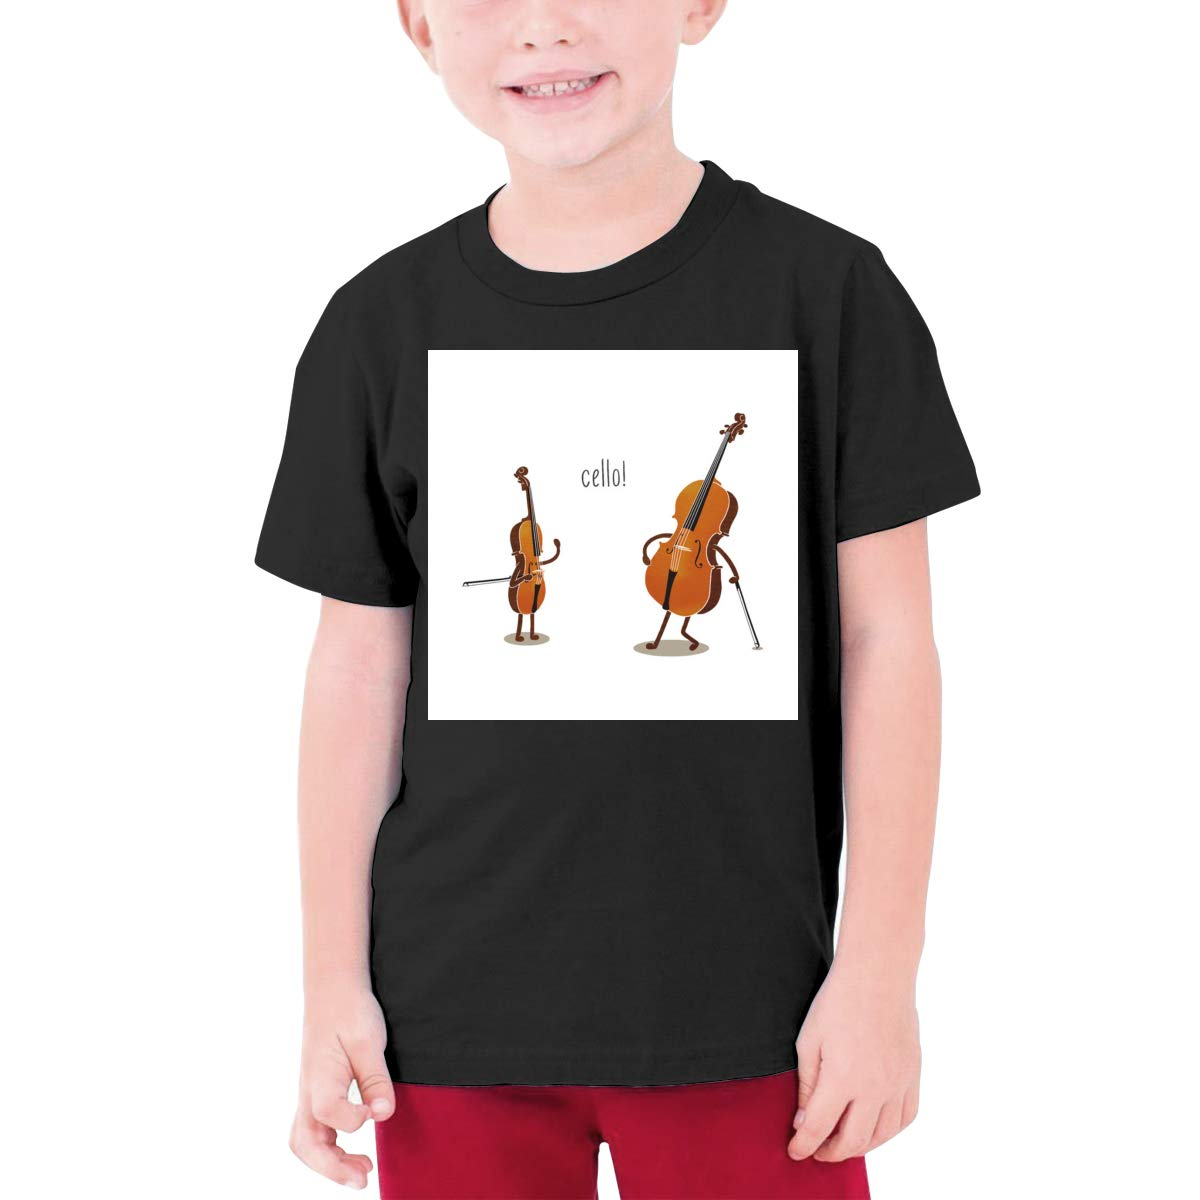 Cotton Youth T Shirts Short Sleeve for Teenager Boys Girls EROTEN Cello